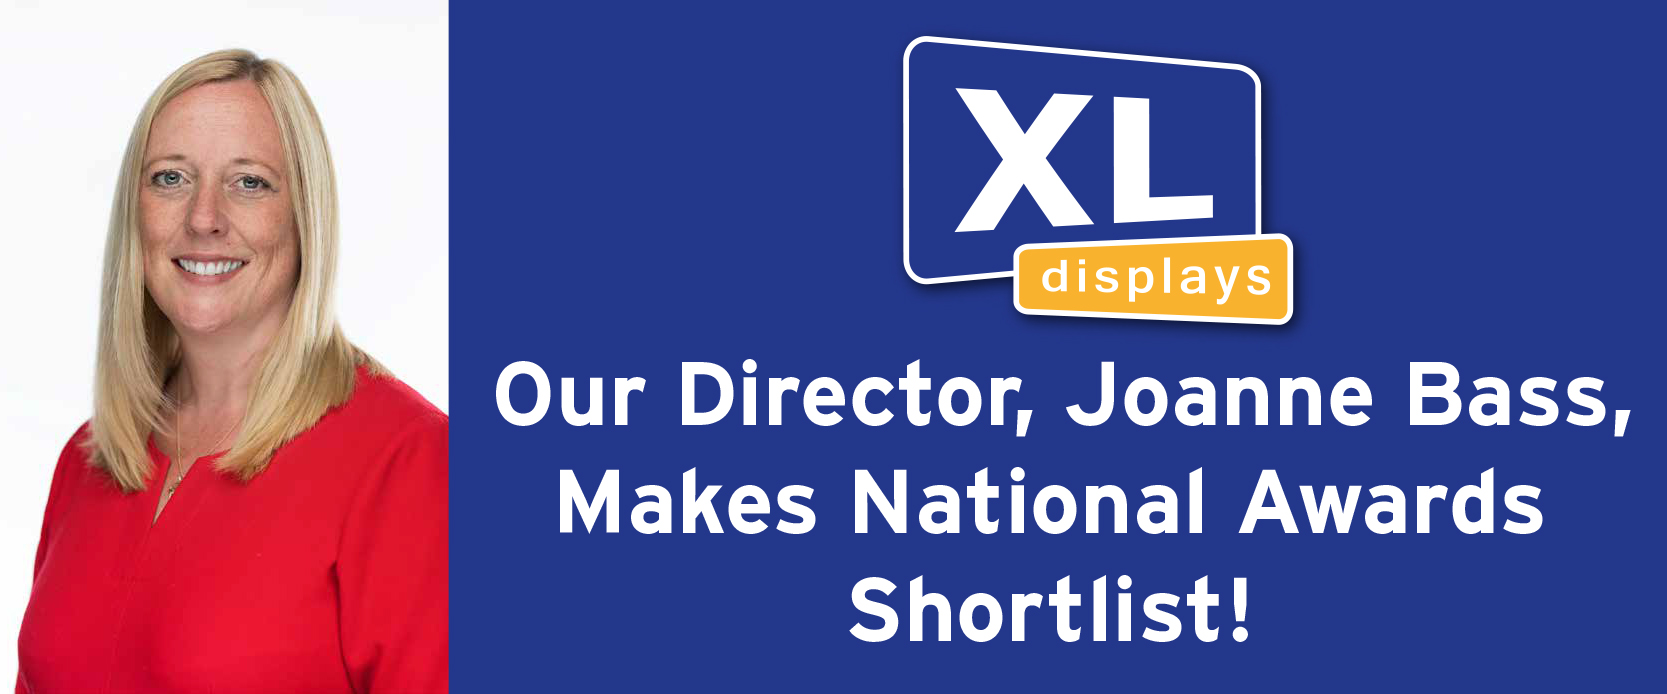 Our Director, Joanne Bass, Makes National Awards Shortlist!